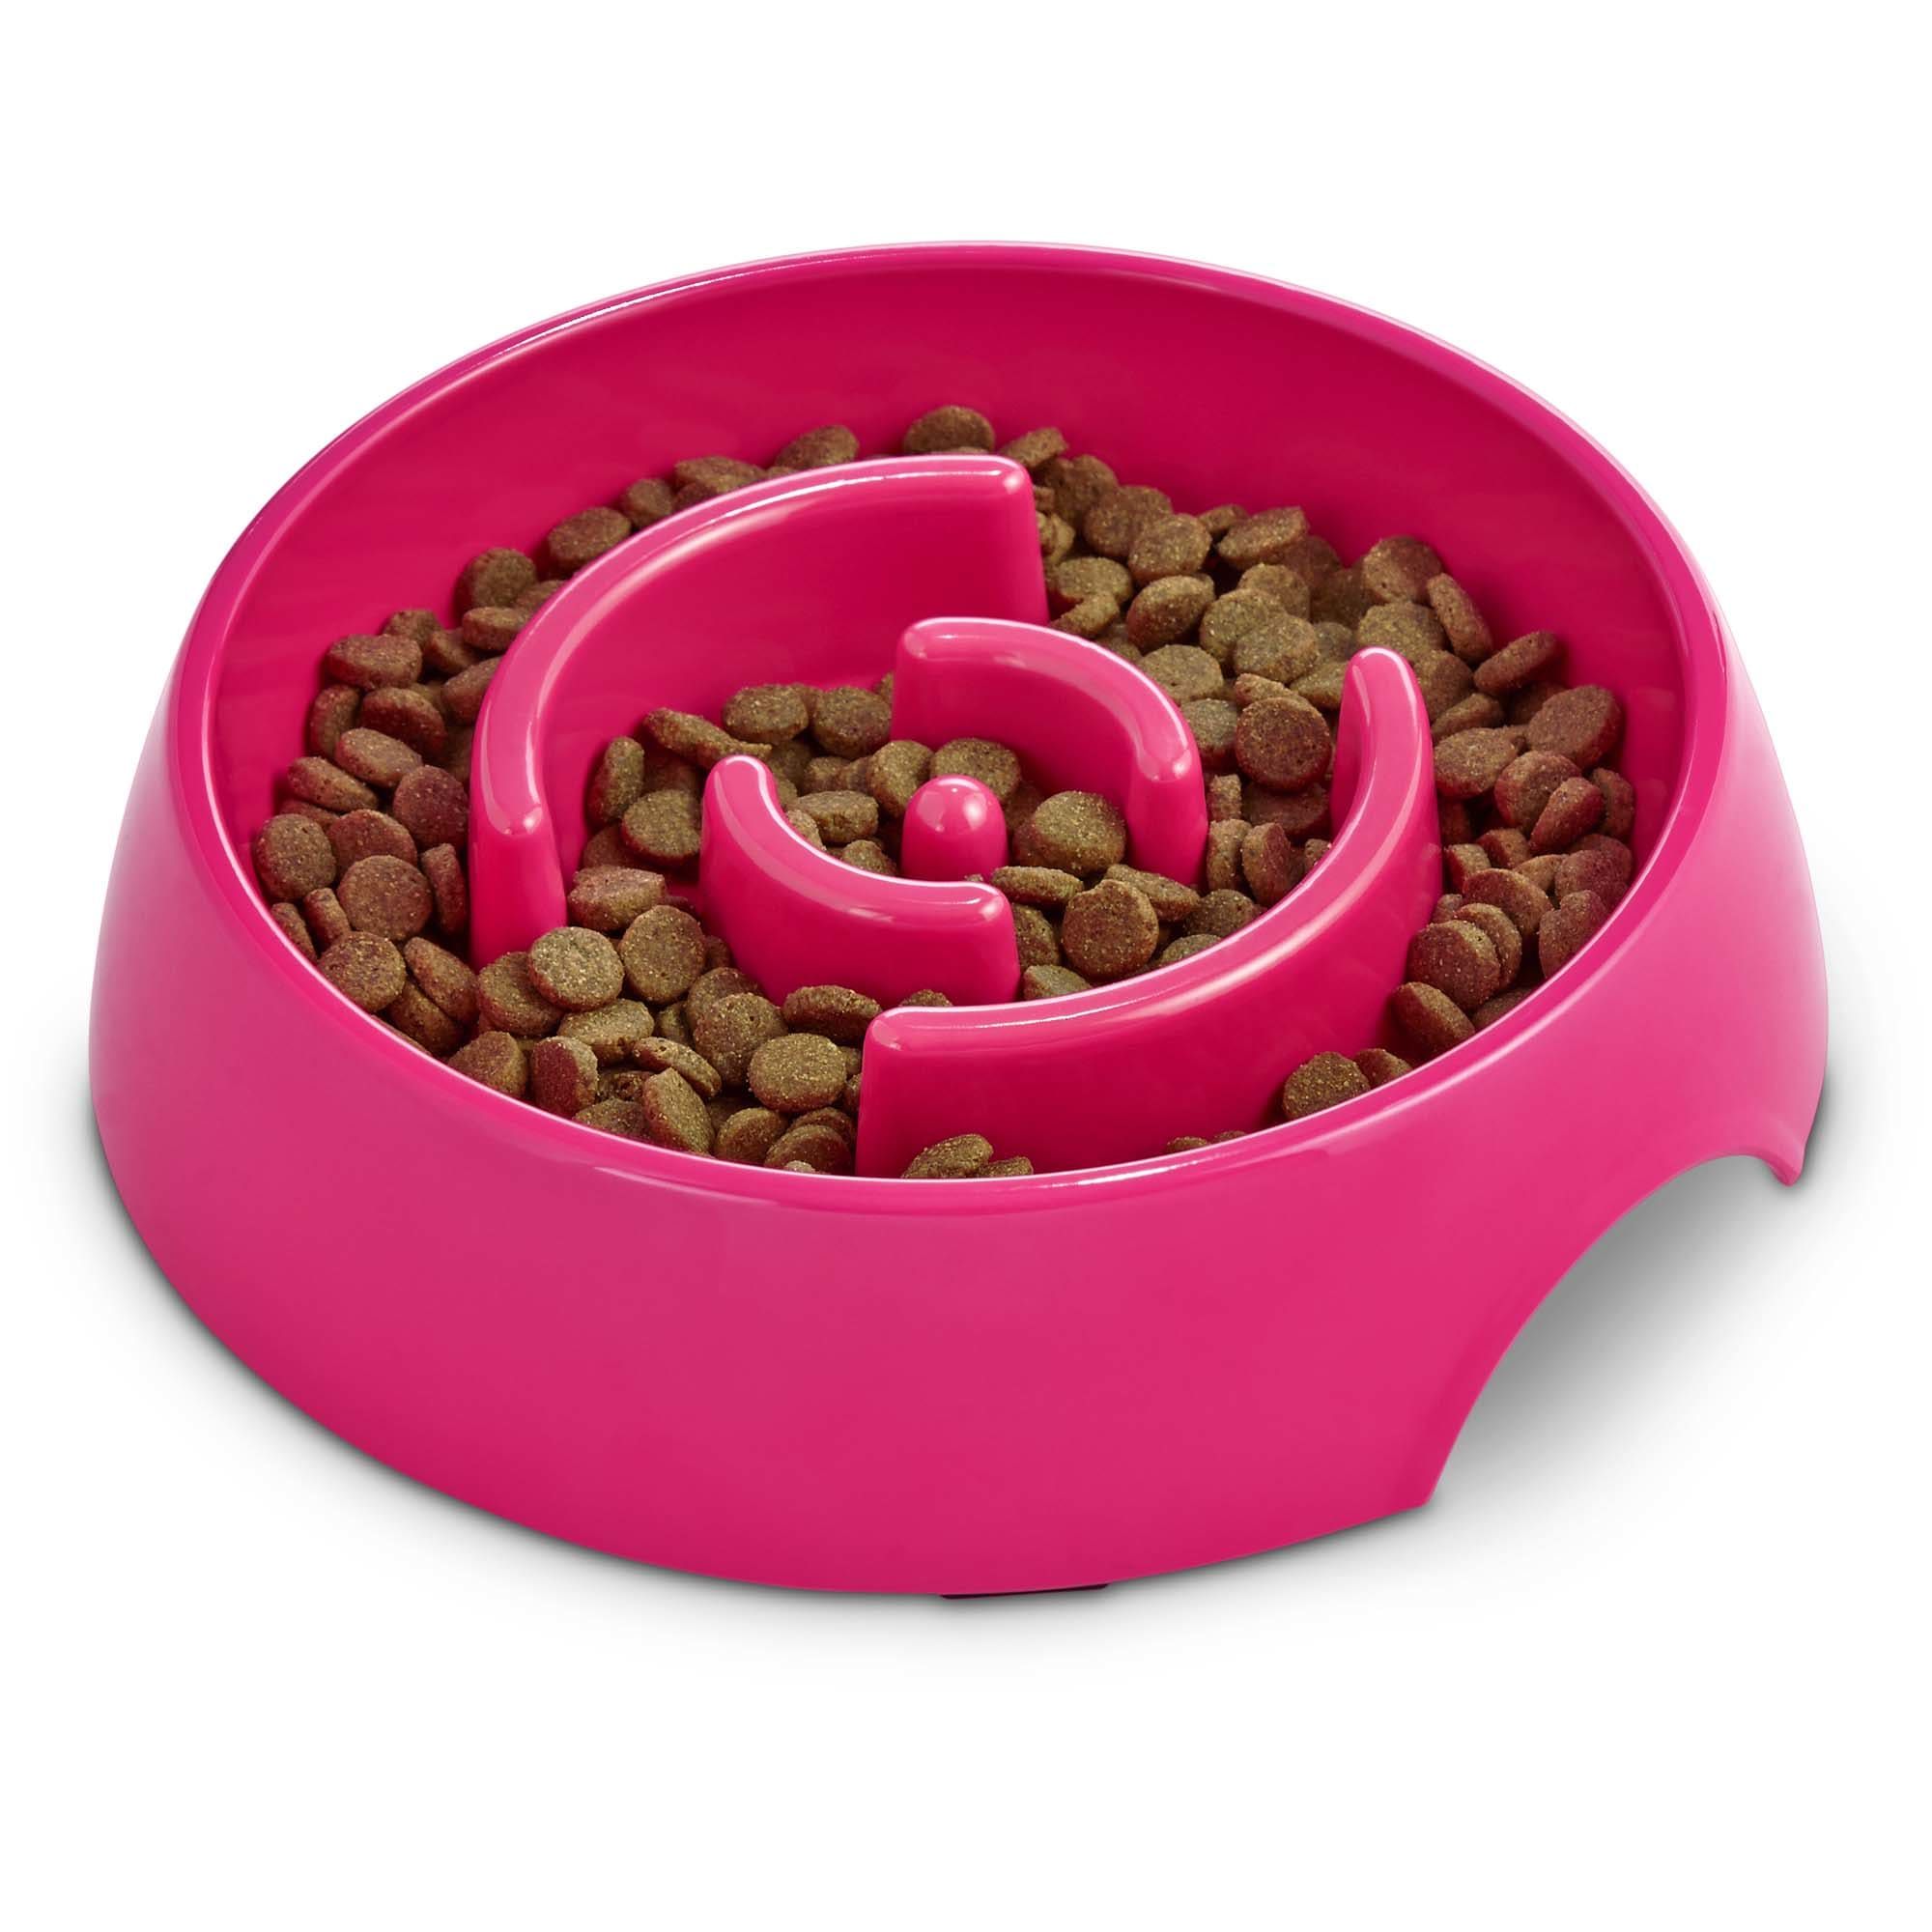 Harmony Pink Plastic Slow Feeder Dog Bowl Large Petco